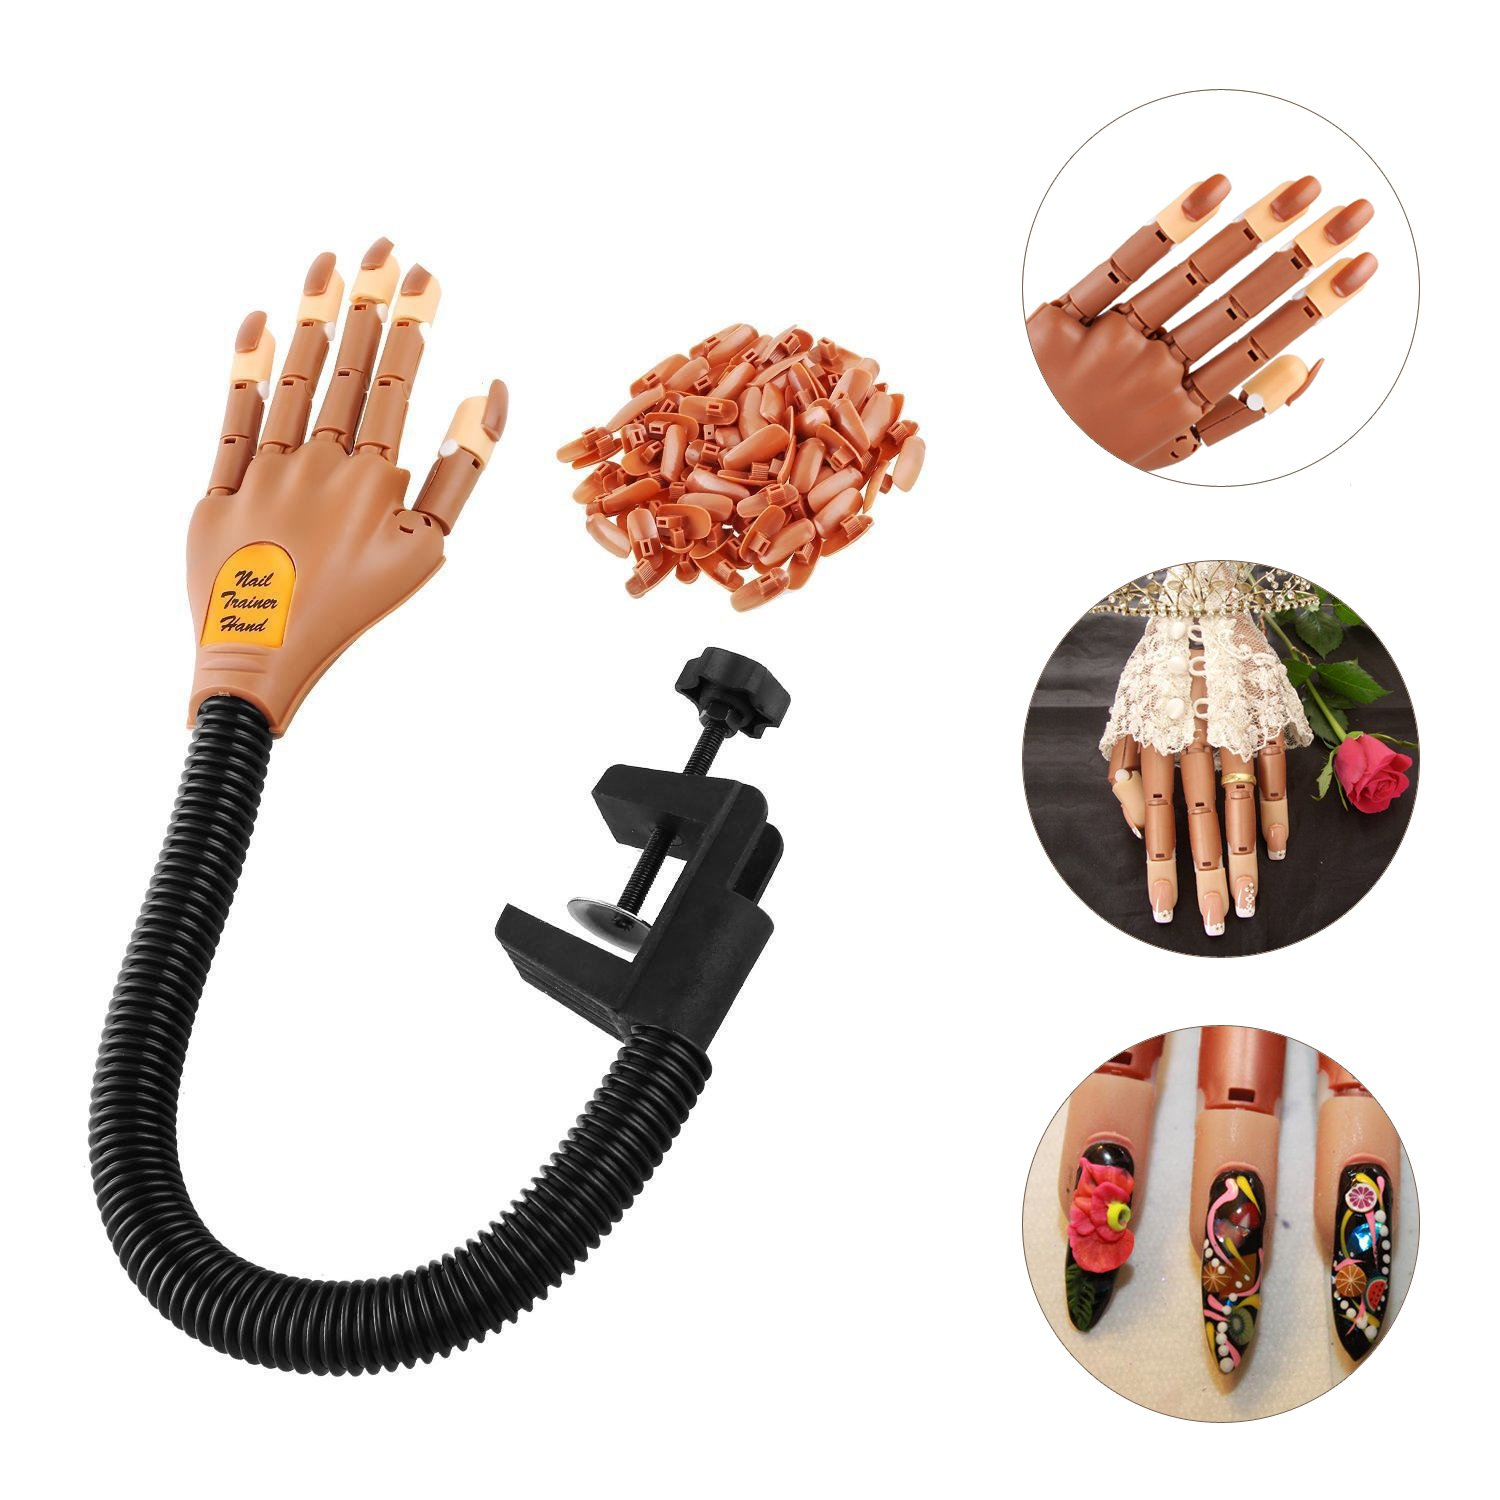 Amazon.com : Nail Trainer Practice Nails Hand Flexible Nail Training ...